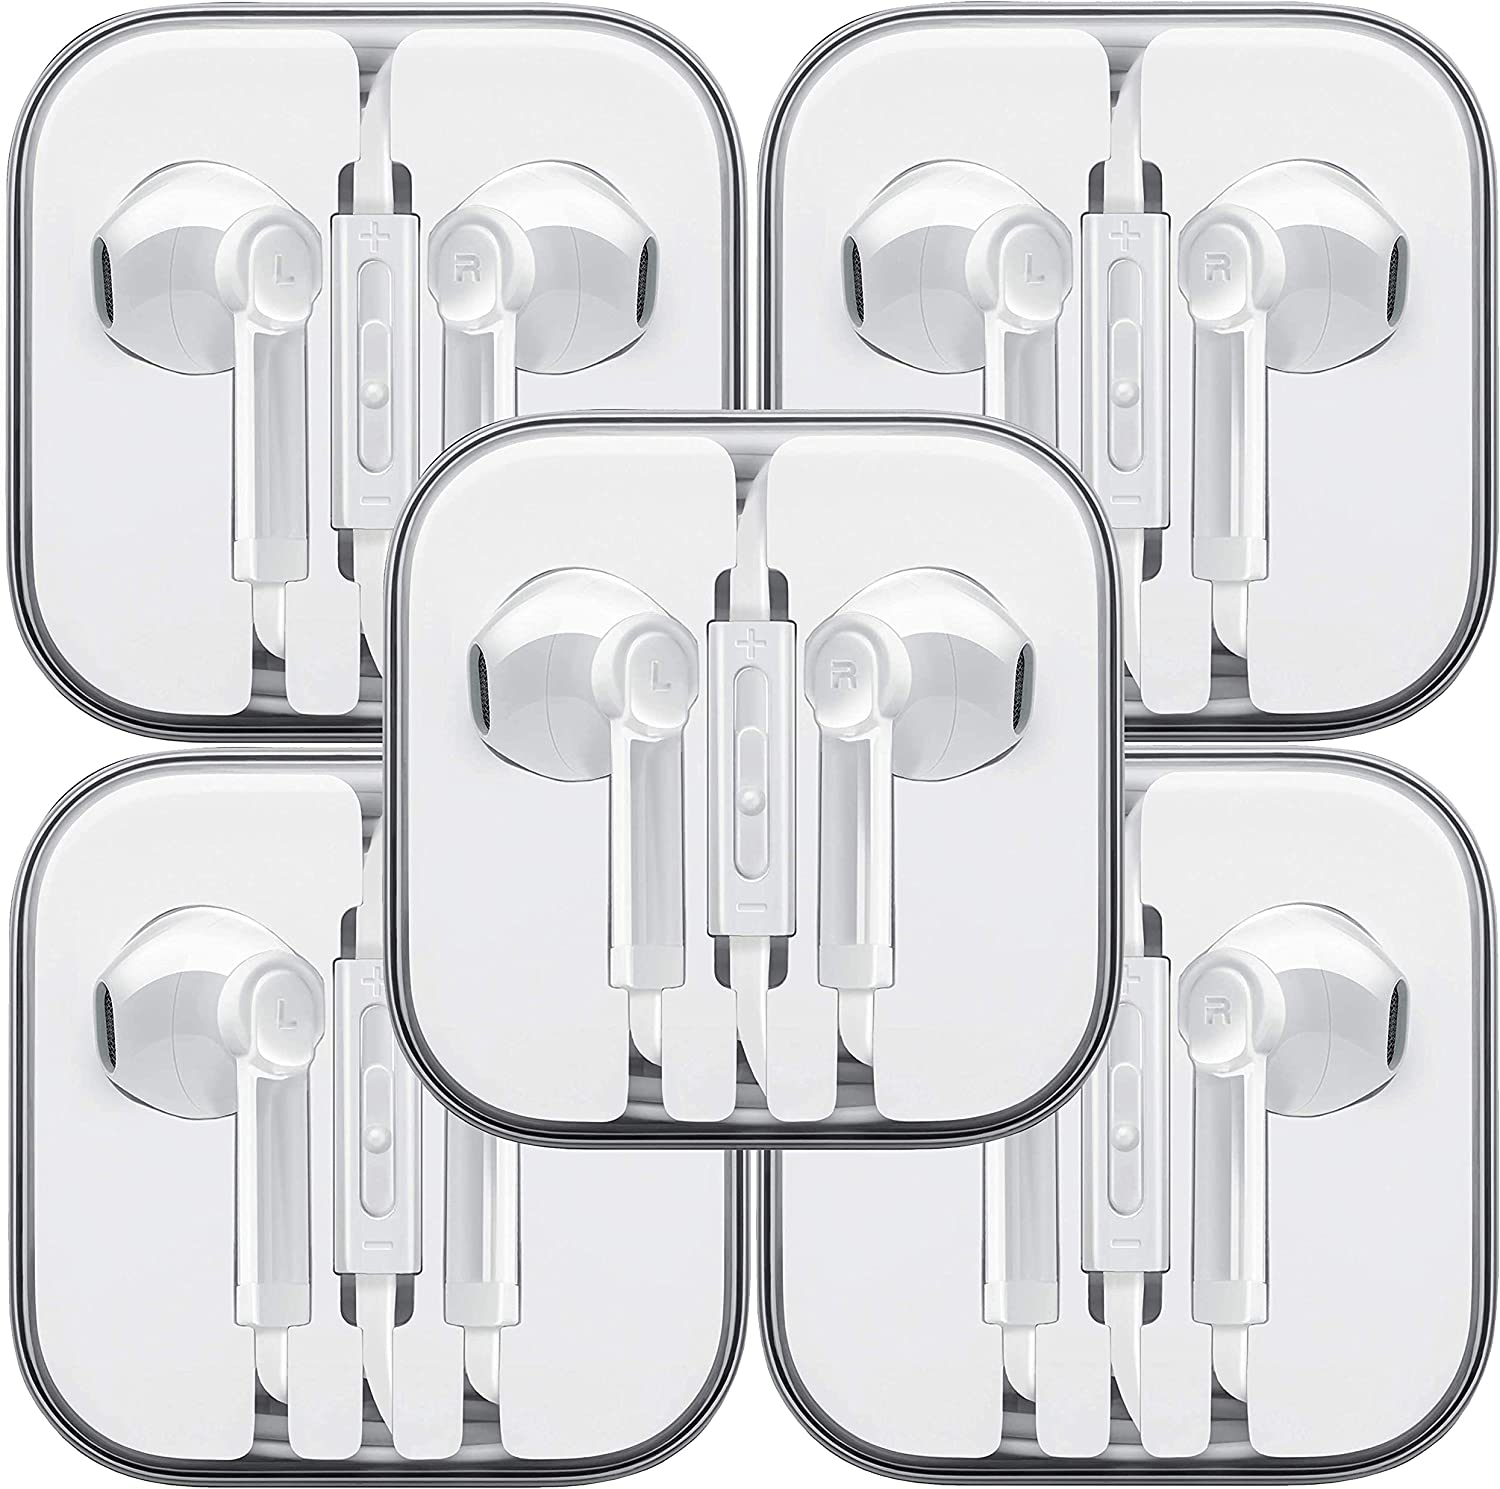 Wired Earbud Headphones with Microphone, Boost+ Premium Earphones Volume Control Slide-Bar with 3.5mm Port for PCs, Tablets, and Cell Phones in The Office, Classroom or Home, White, 5-Pack